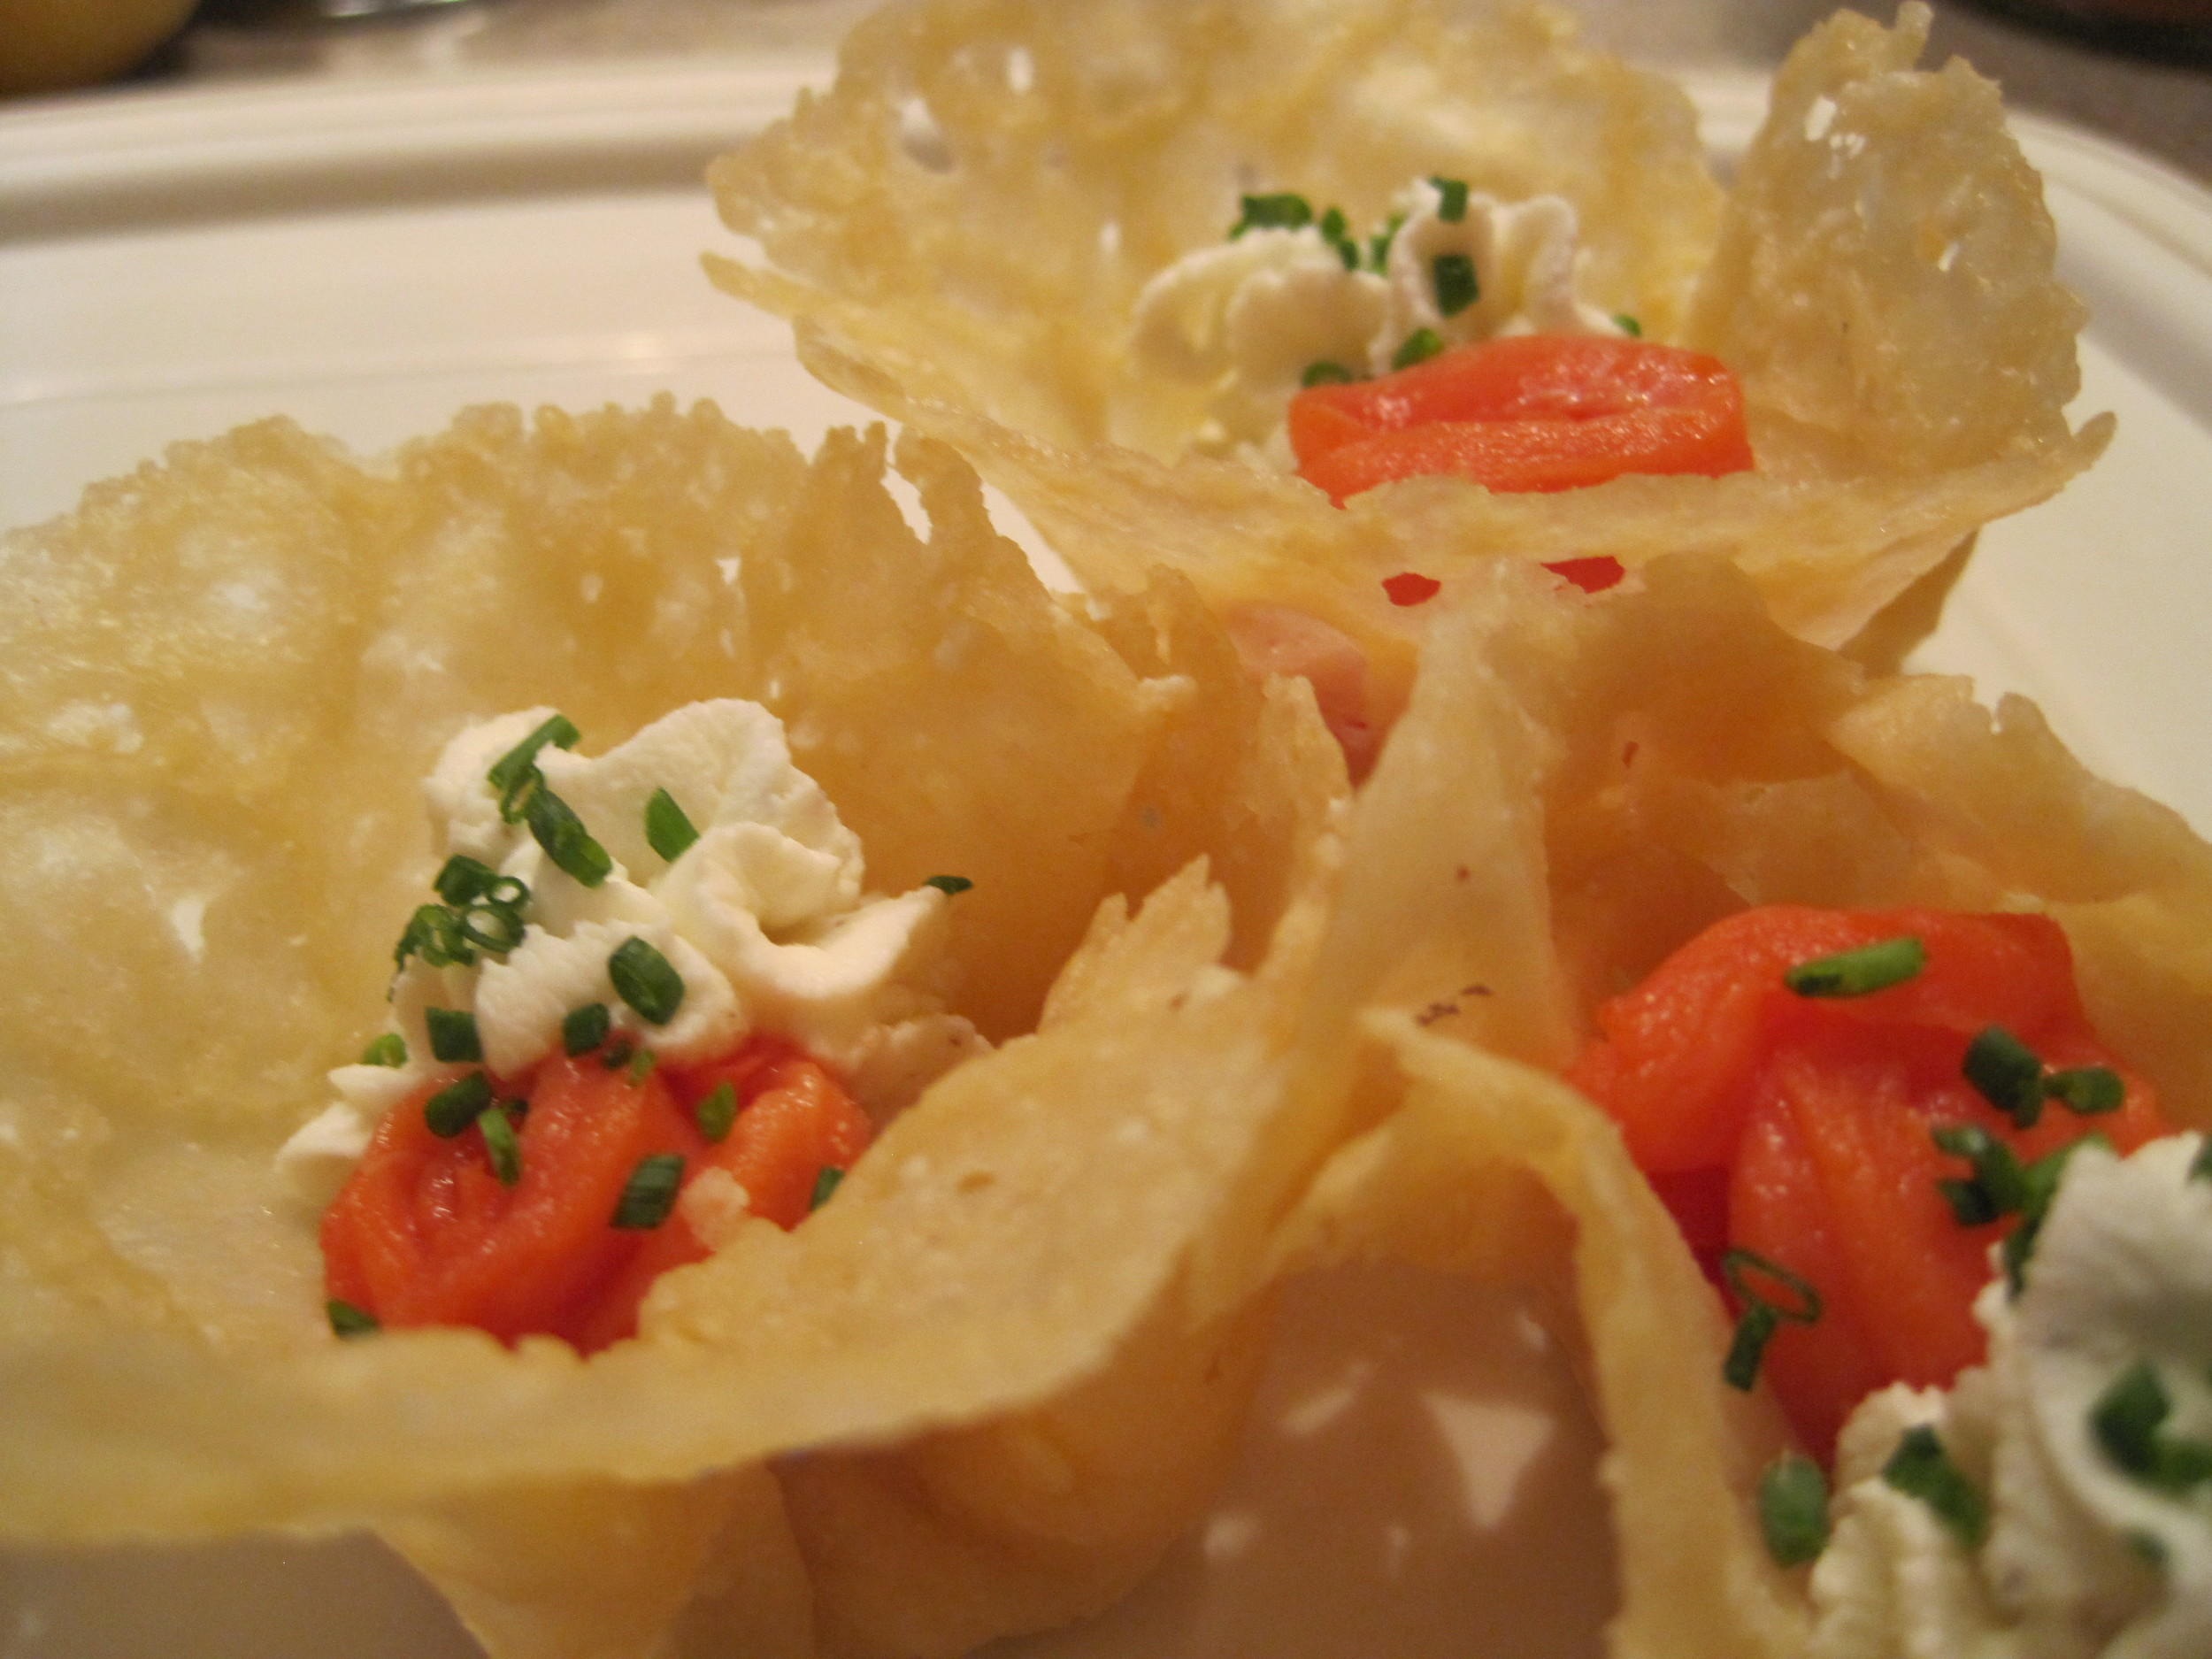 Parmesan cups with rosettes of smoked salmon and roasted black pepper chevre